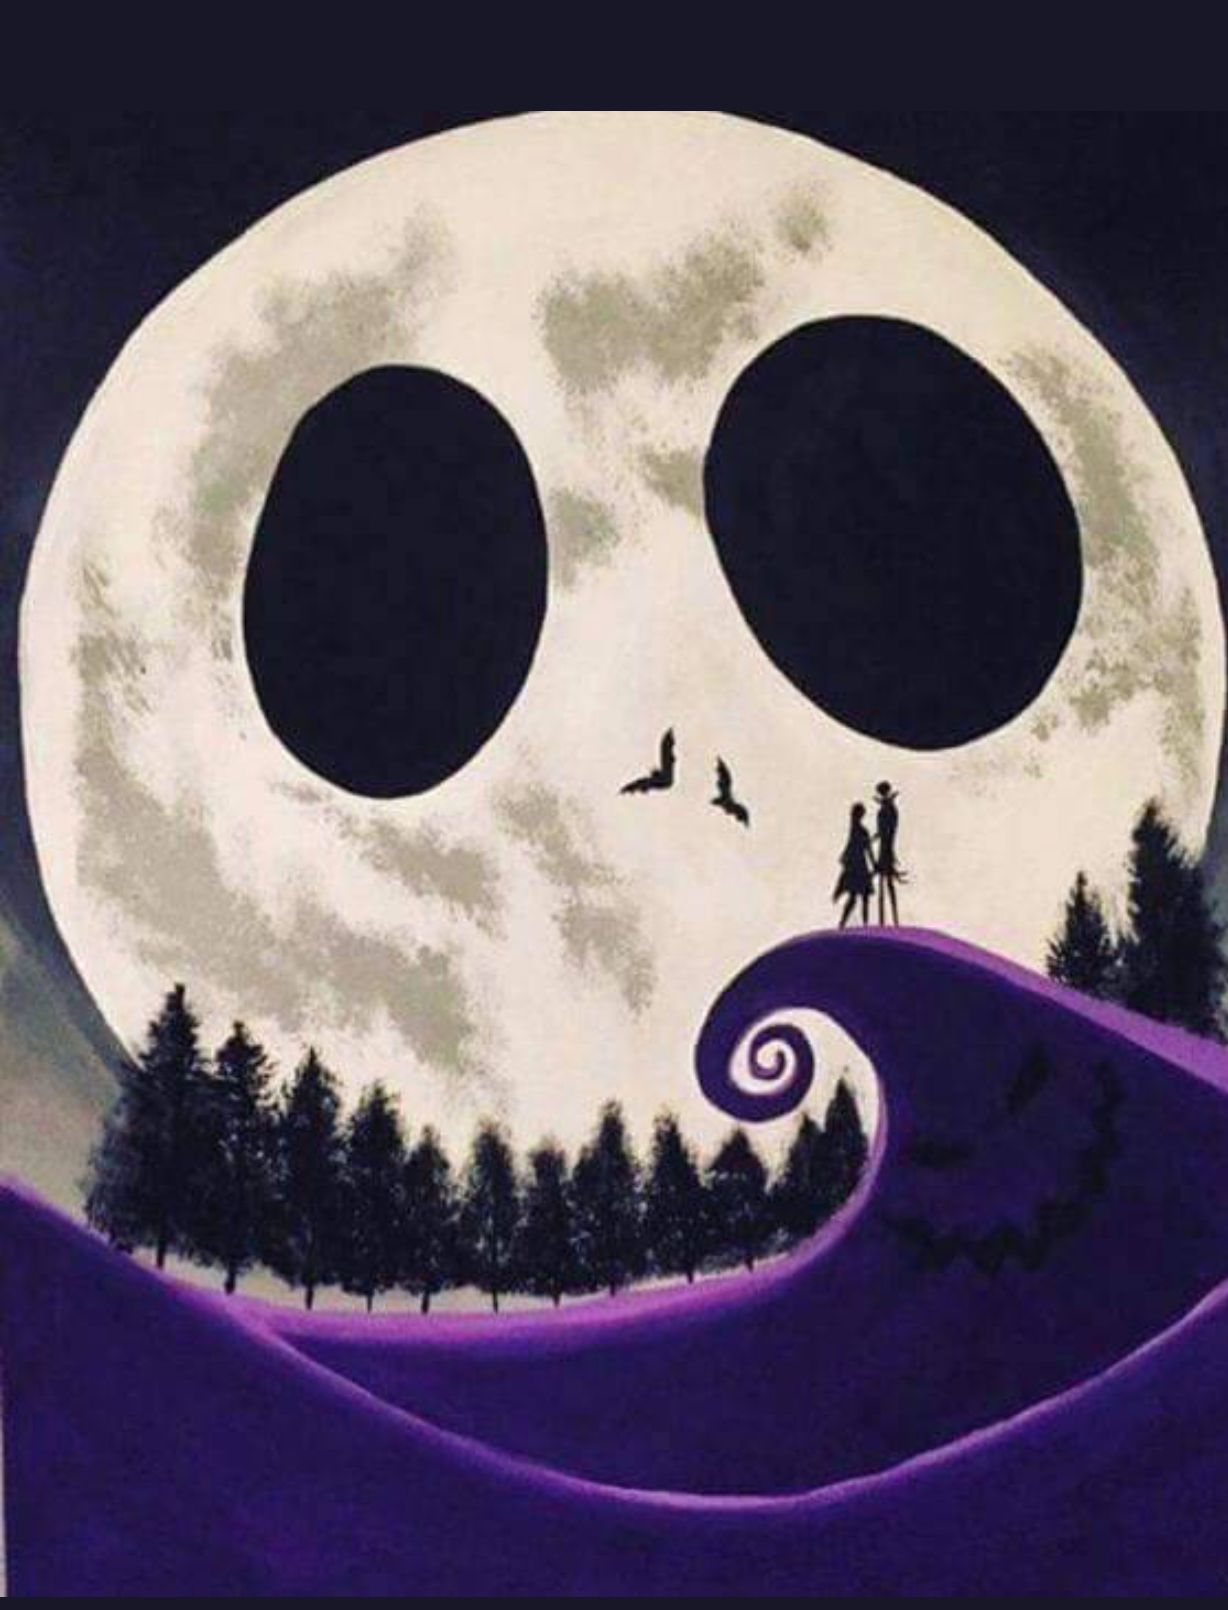 Simply Meant To Be Nightmare Before Christmas Wallpaper Nightmare Before Christmas Drawings Tim Burton Art